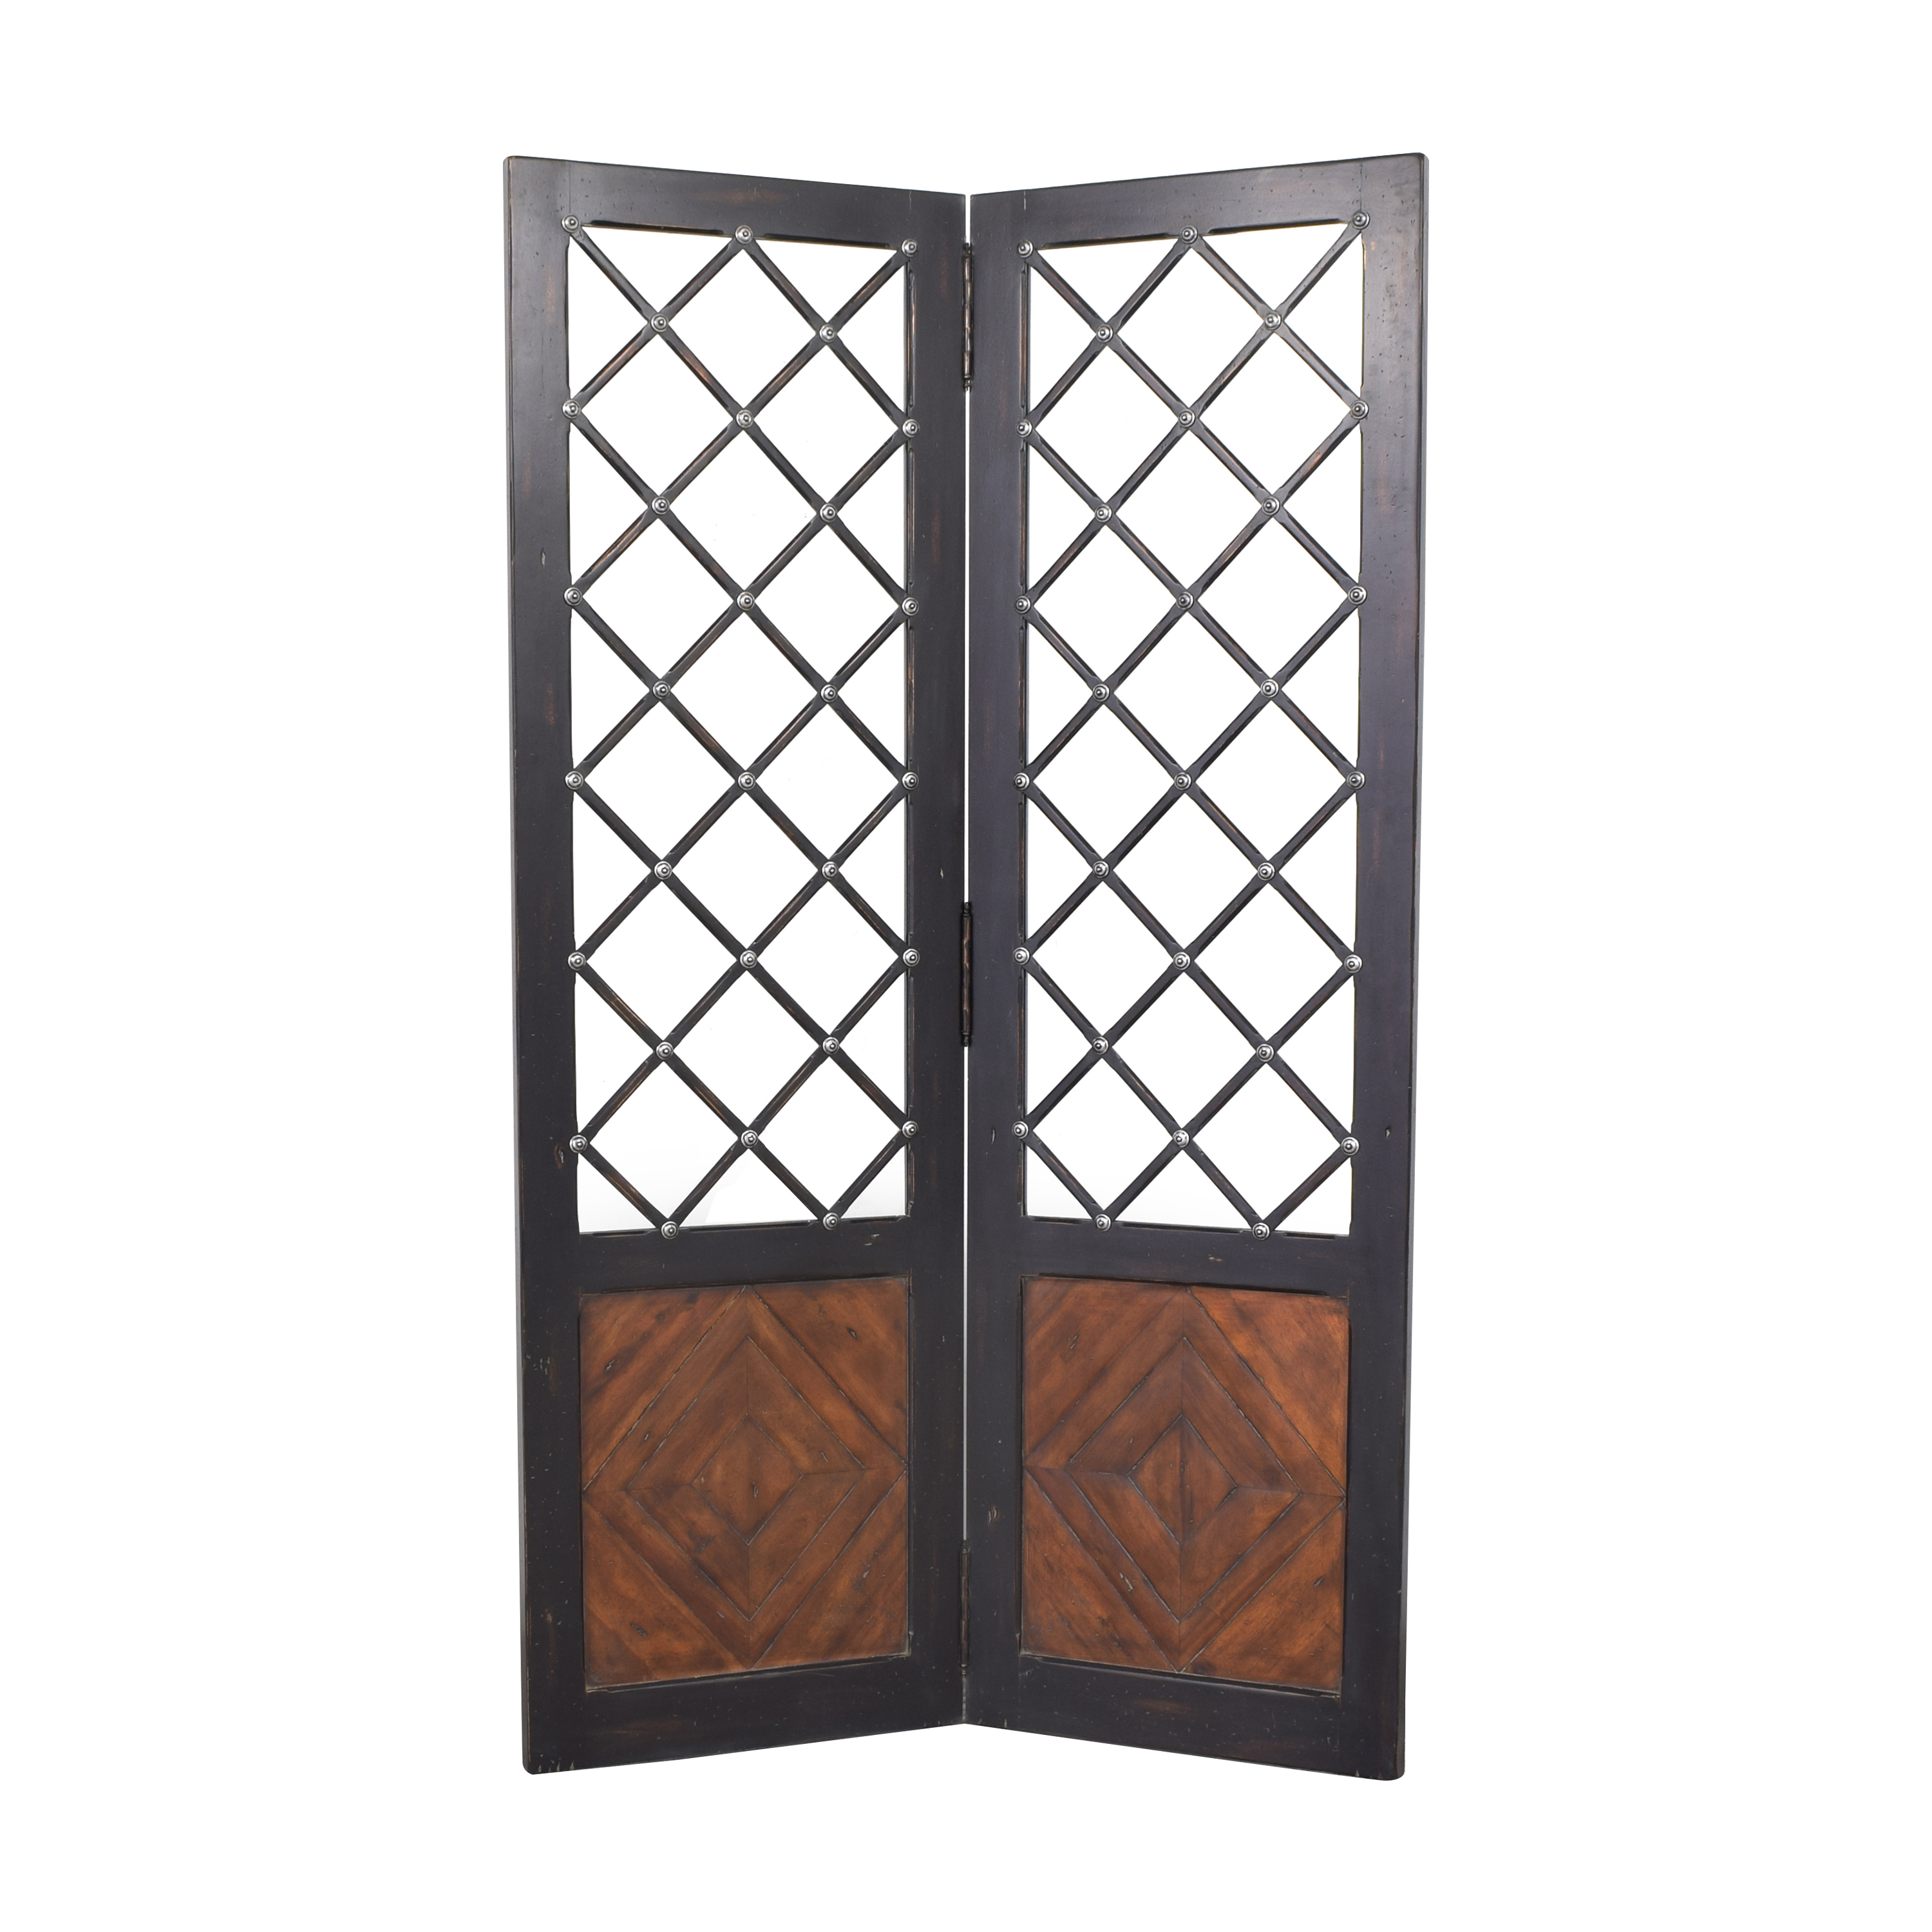 Bombay Company Bombay Company Decorative Folding Screen ma